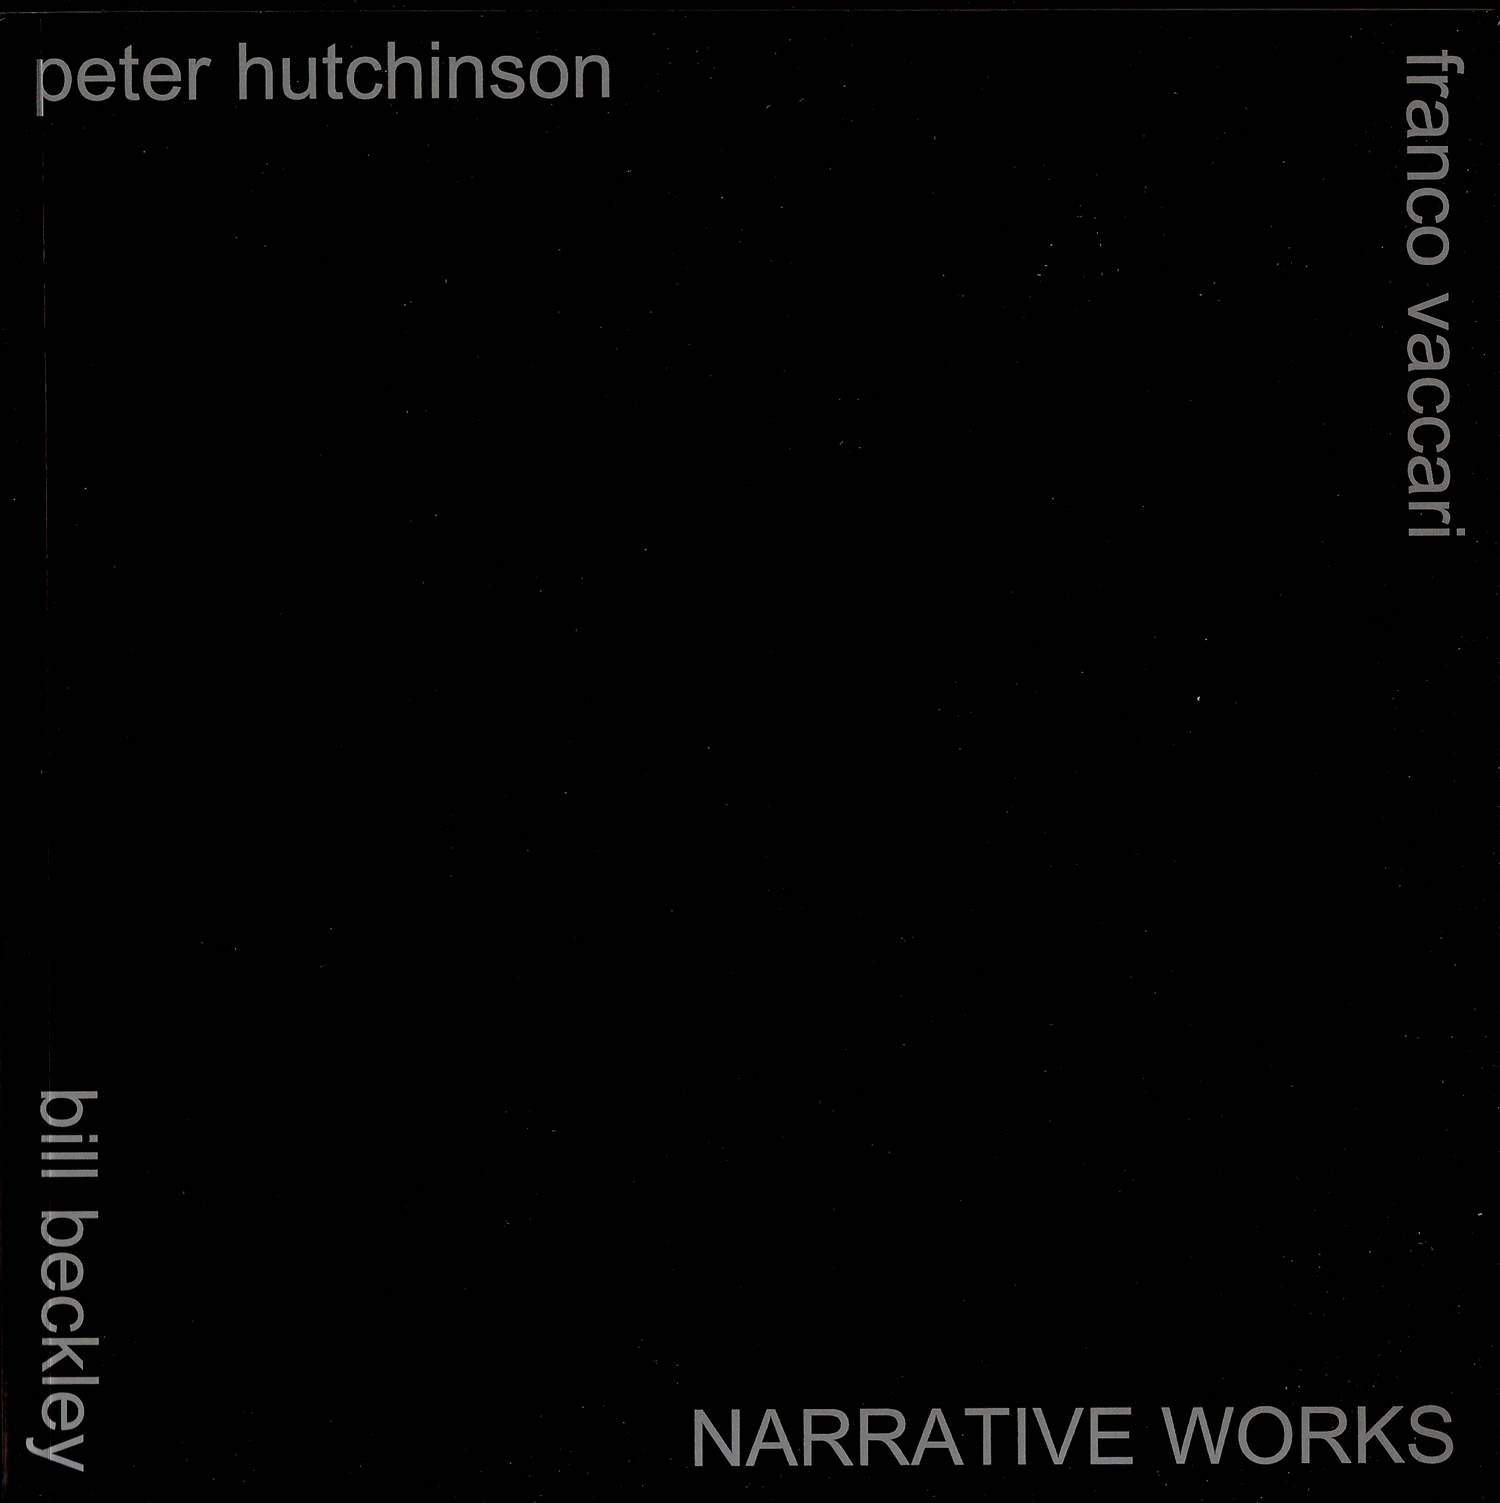 Bill Beckley, Peter Hutchinson, Franco Vaccari - Narrative works